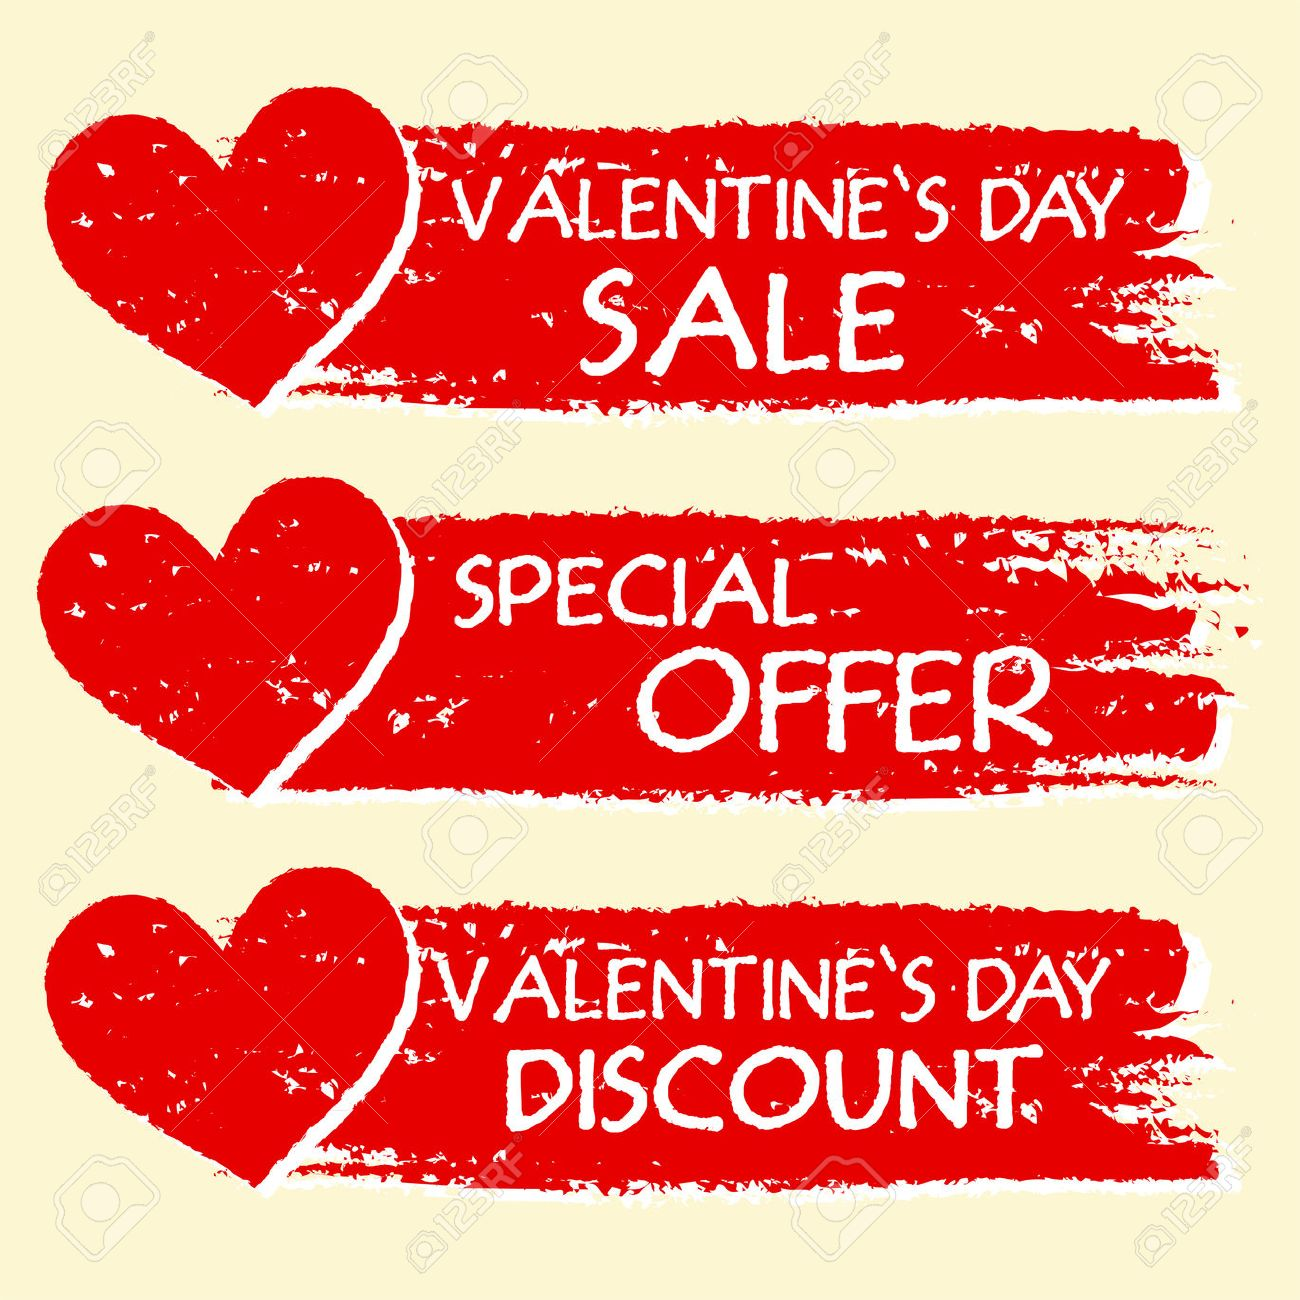 e7178854631c Stock Photo - valentines day sale and discount, special offer - text with  hearts in three red drawn banners